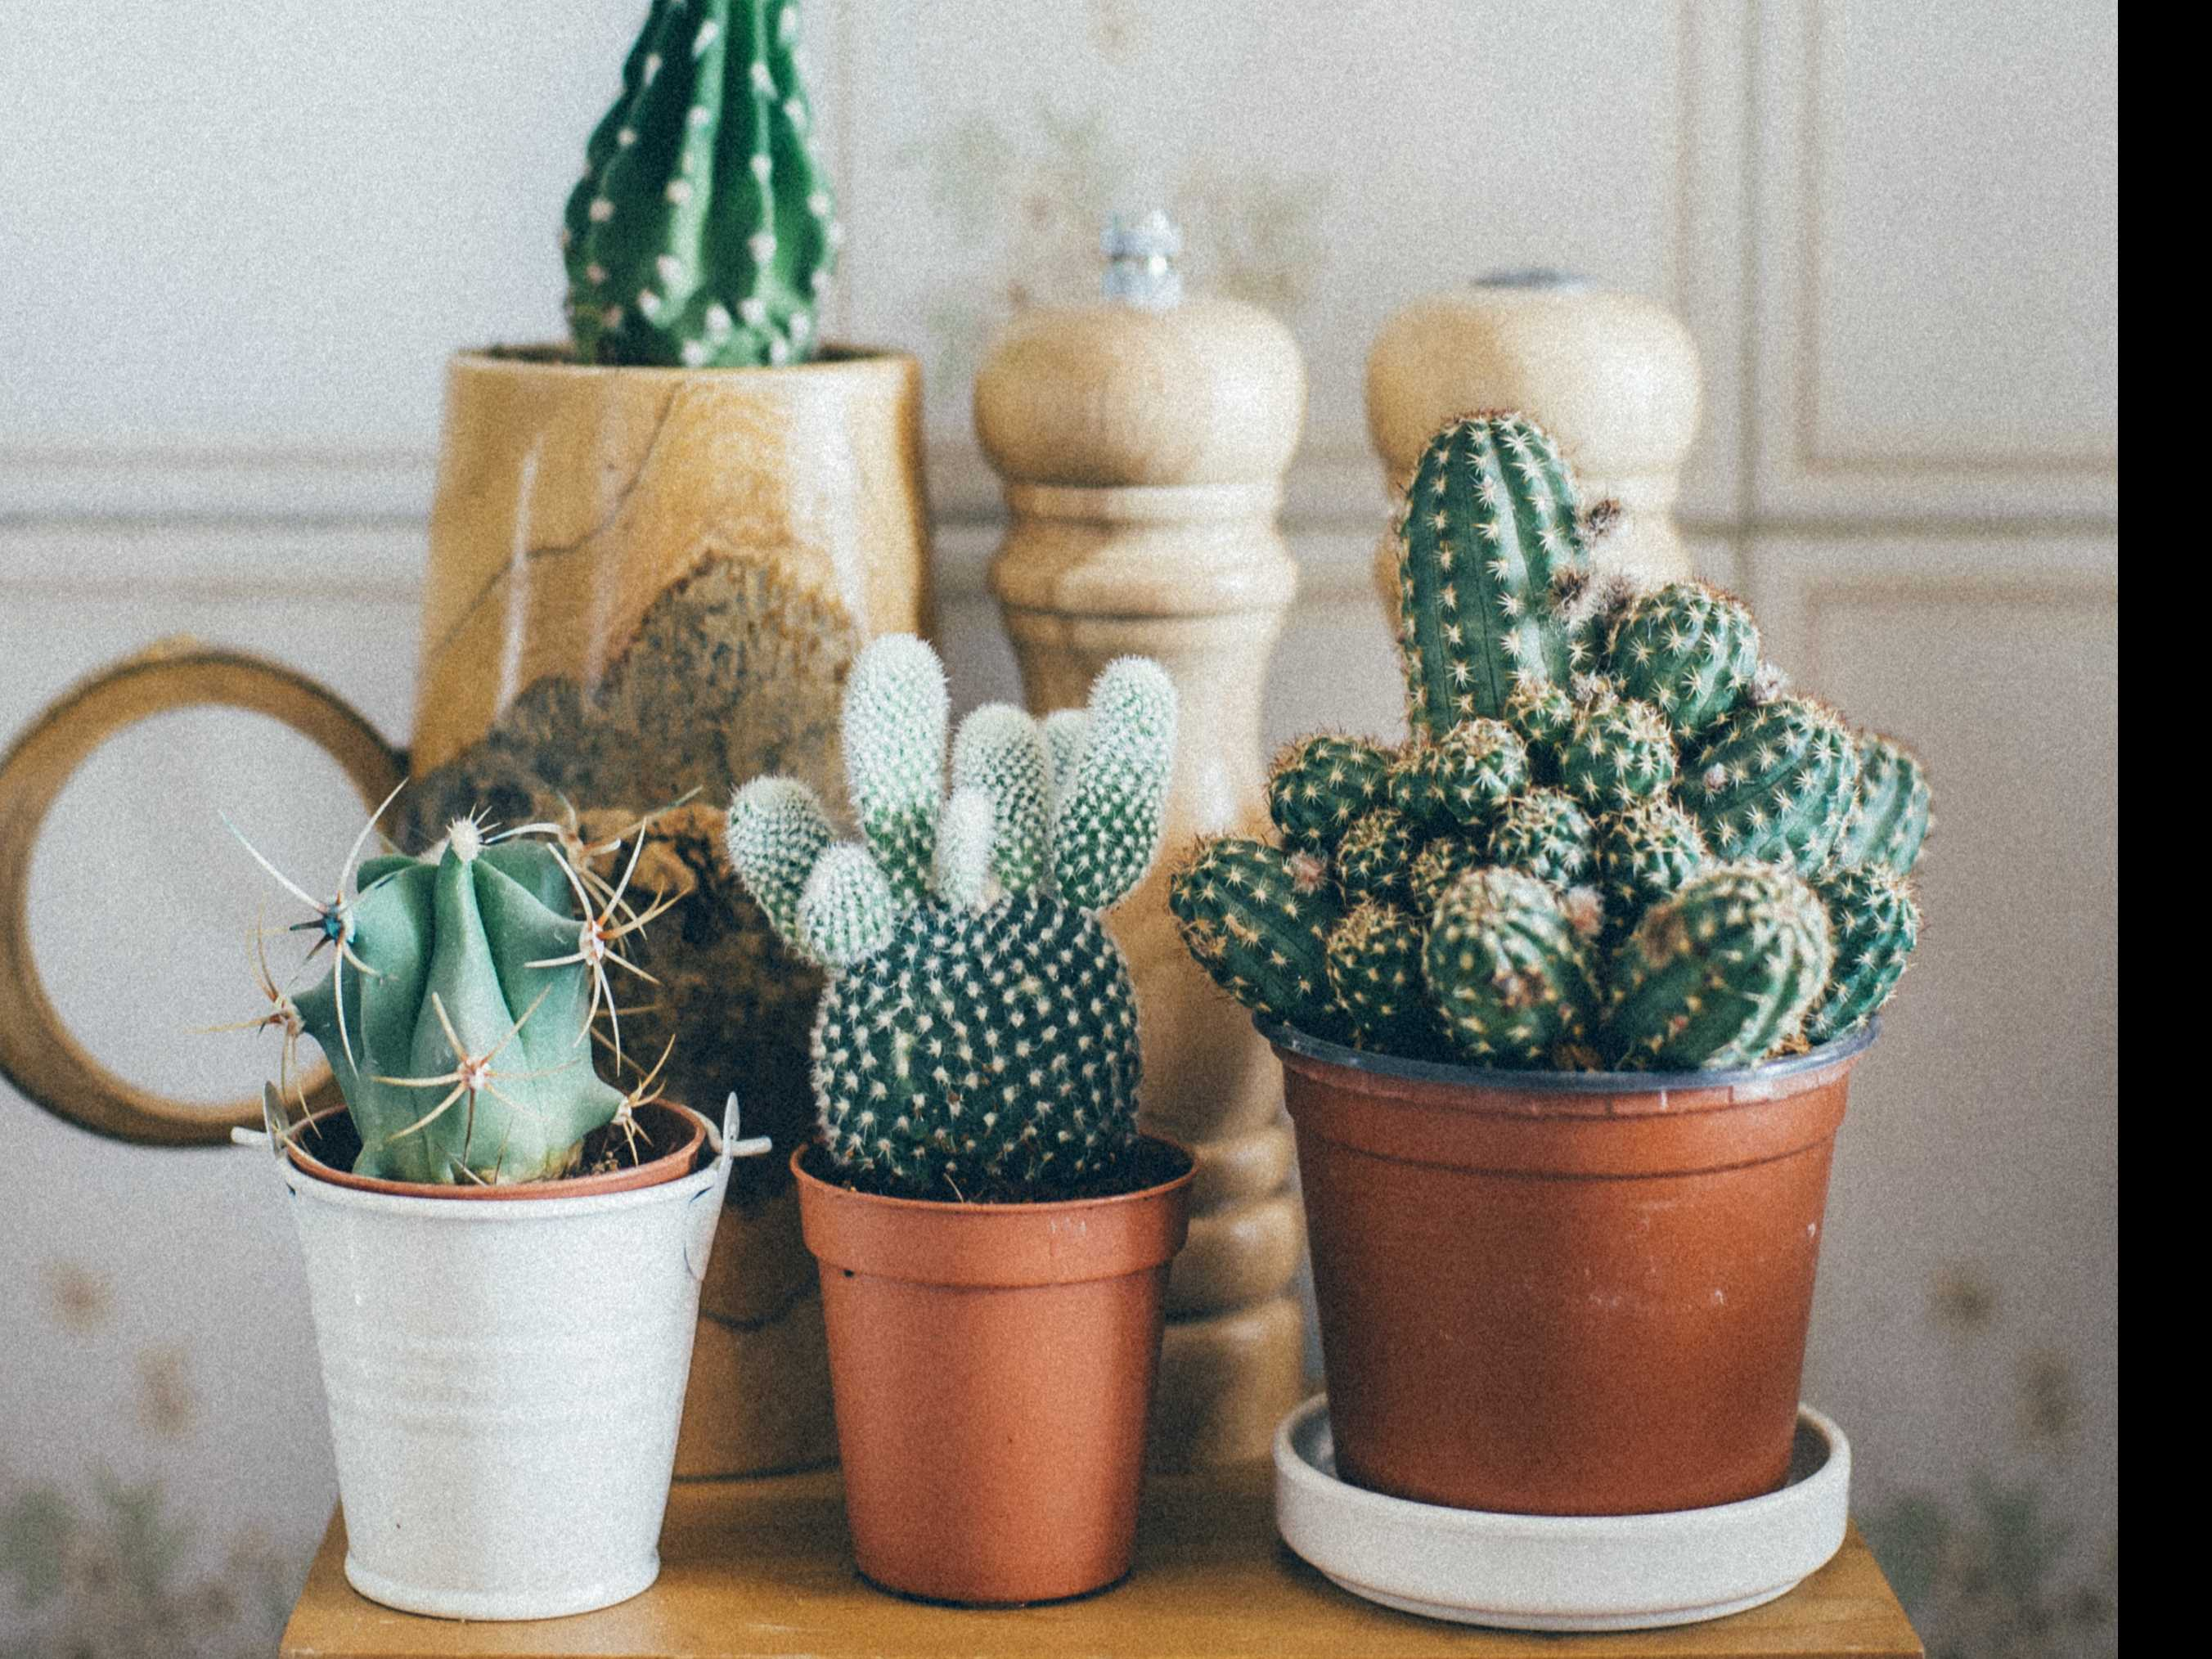 Gardening: Houseplants for the Horticulturally Impaired